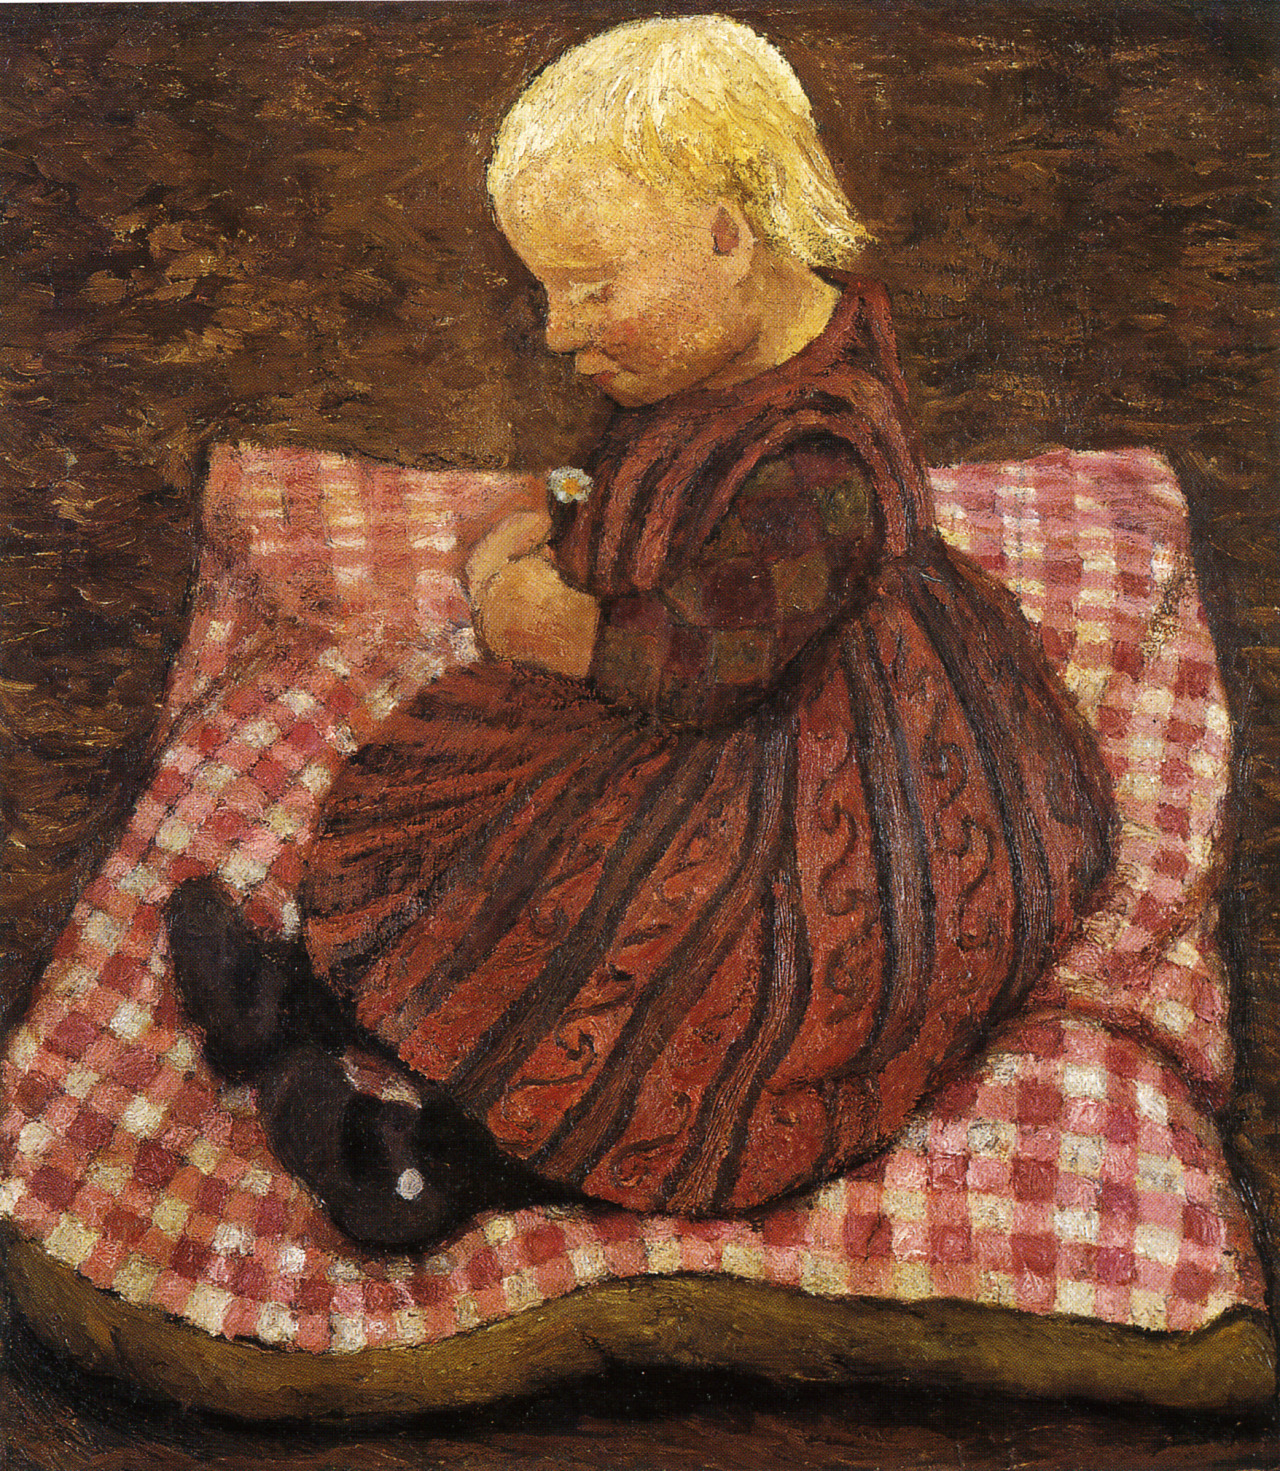 amare-habeo: